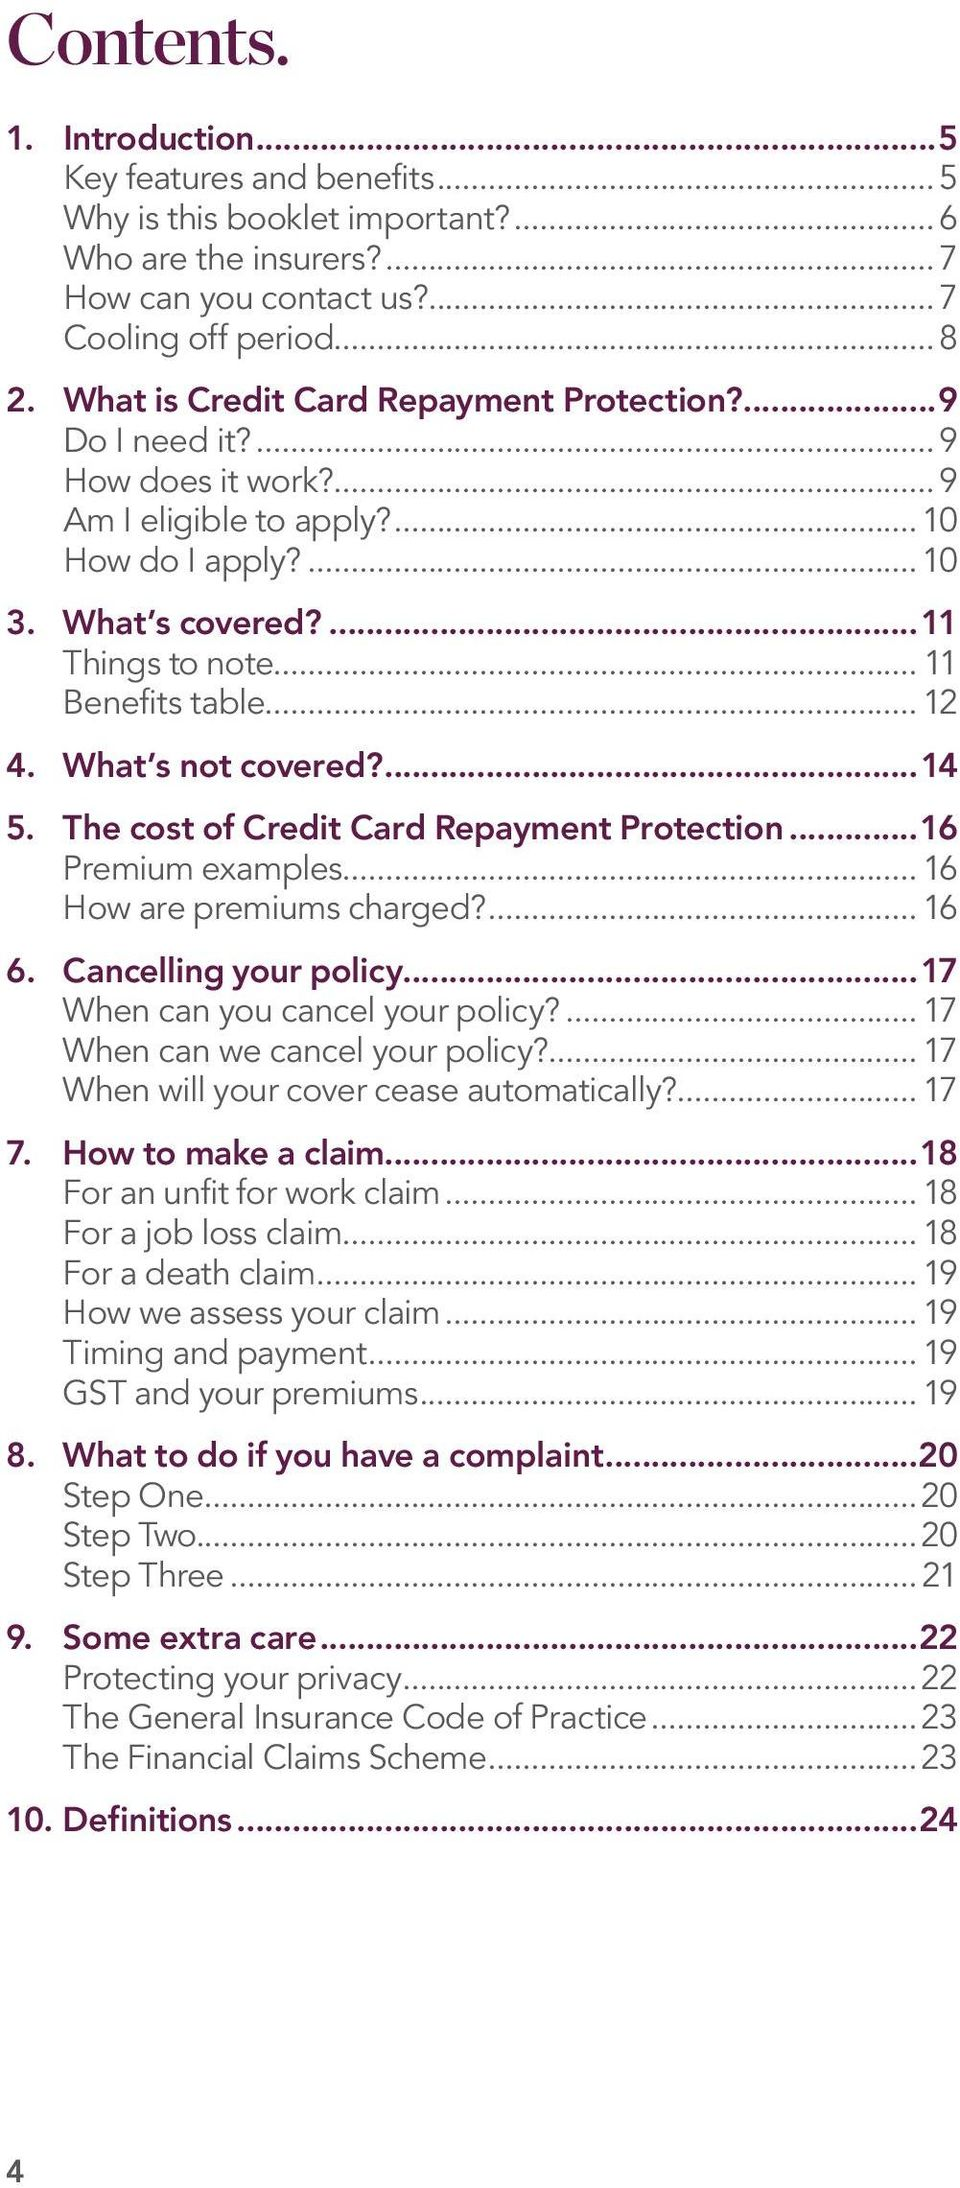 .. 12 4. What s not covered?...14 5. The cost of Credit Card Repayment Protection...16 Premium examples... 16 How are premiums charged?... 16 6. Cancelling your policy.